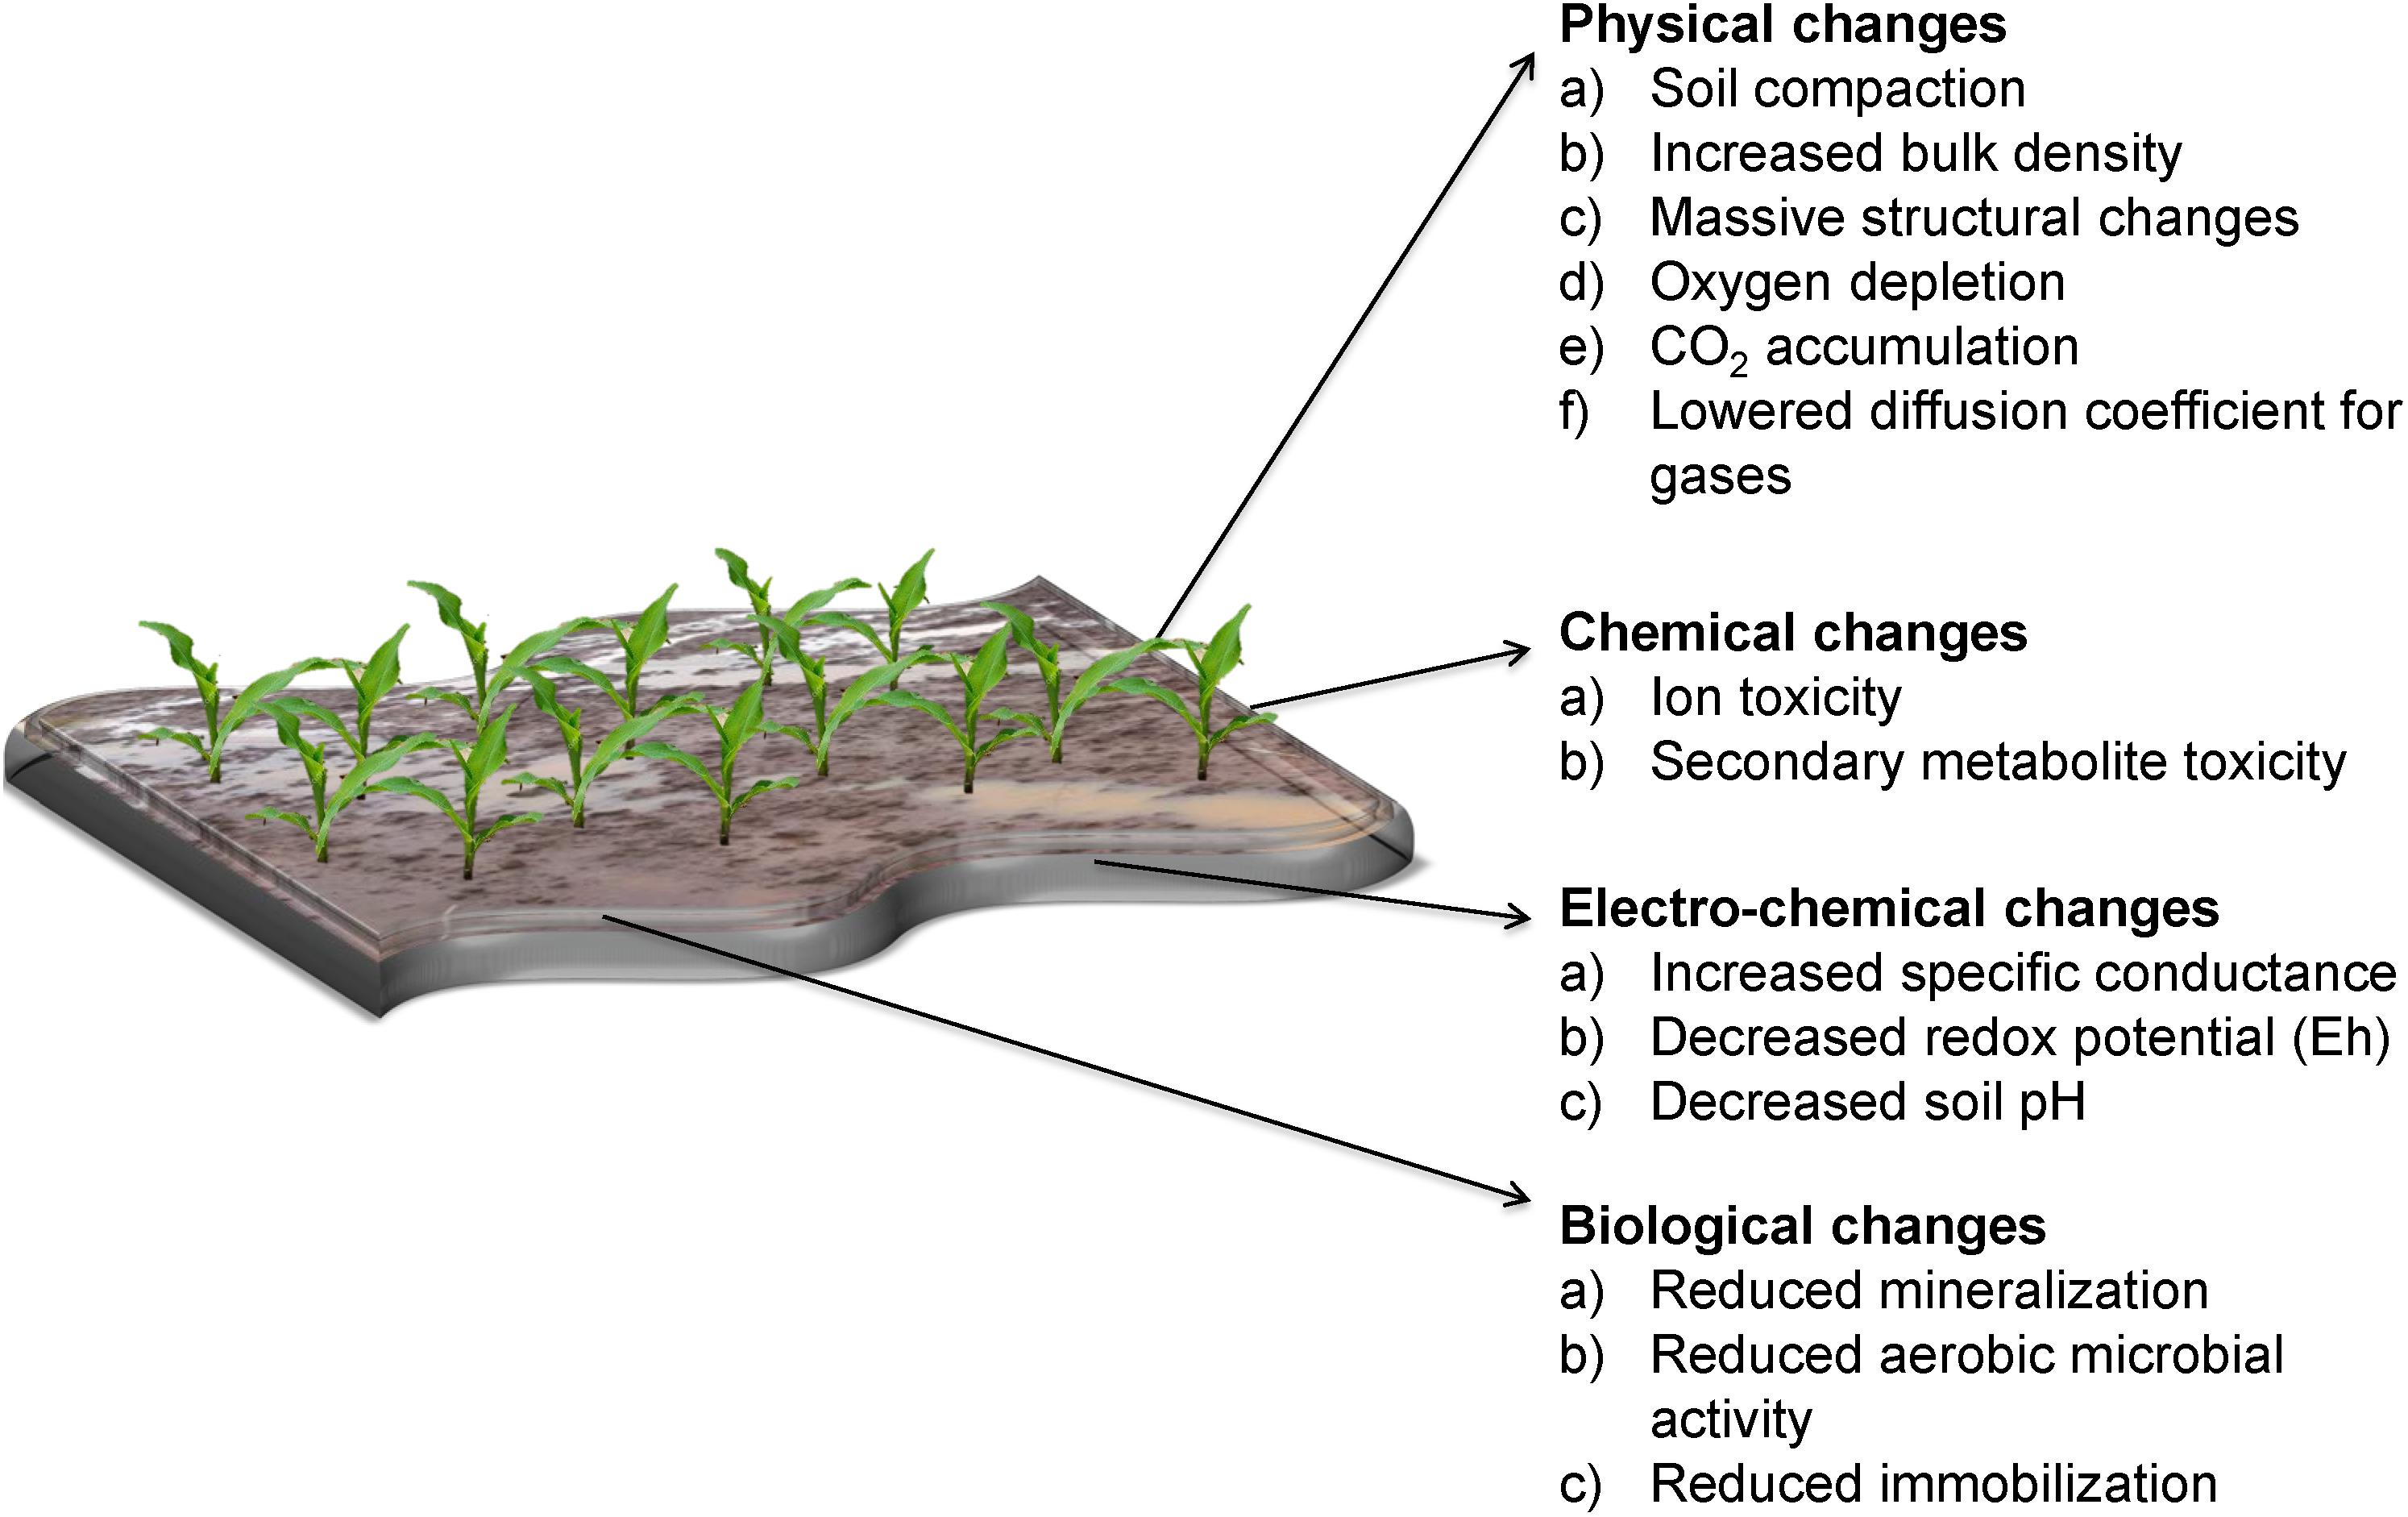 Frontiers | Soil and Crop Management Practices to Minimize